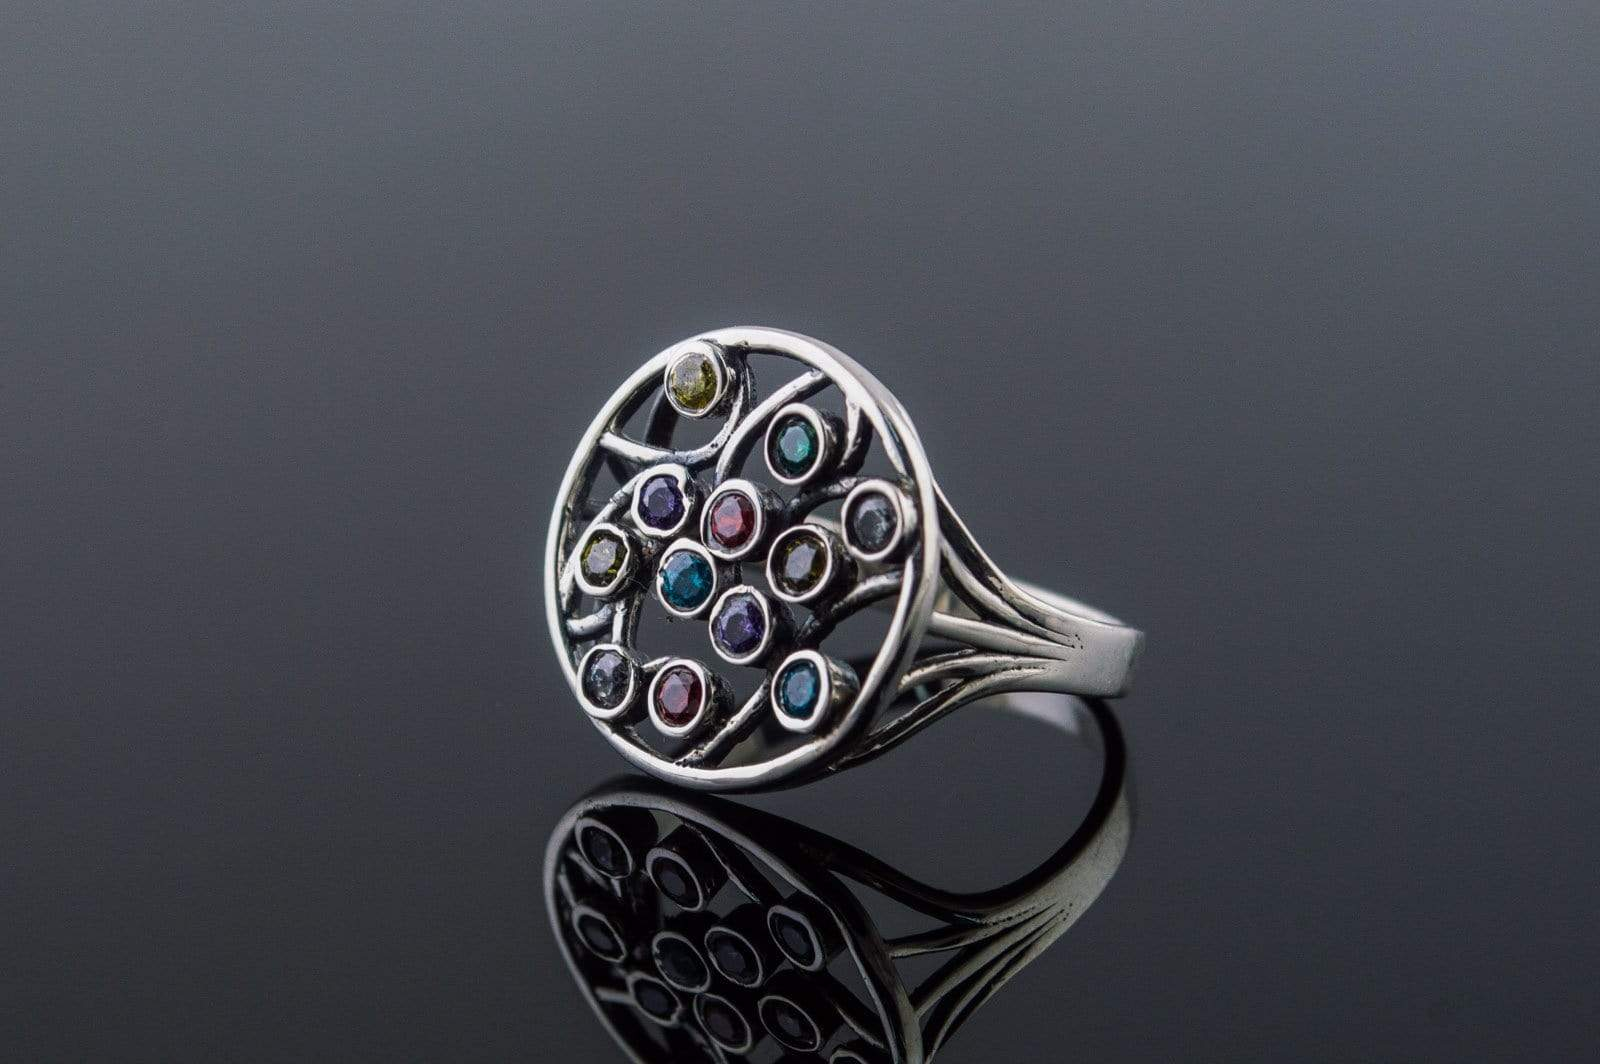 Handmade Ring with Gems Sterling Silver Ring Jewelry